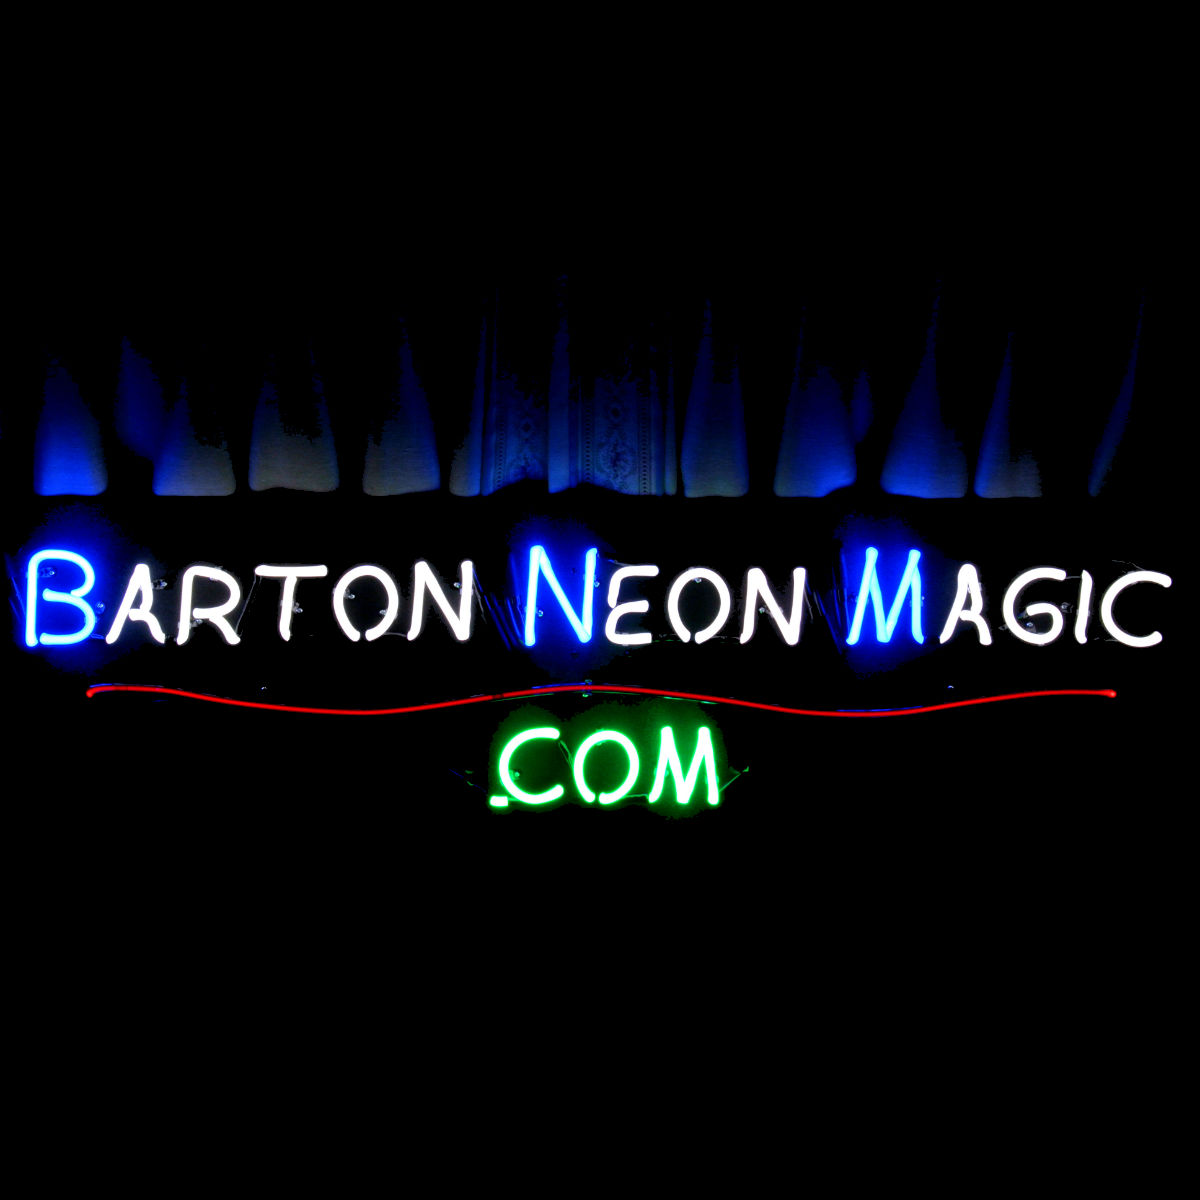 CUSTOM NEON SIGNS by John Barton - BartonNeonMagic.com